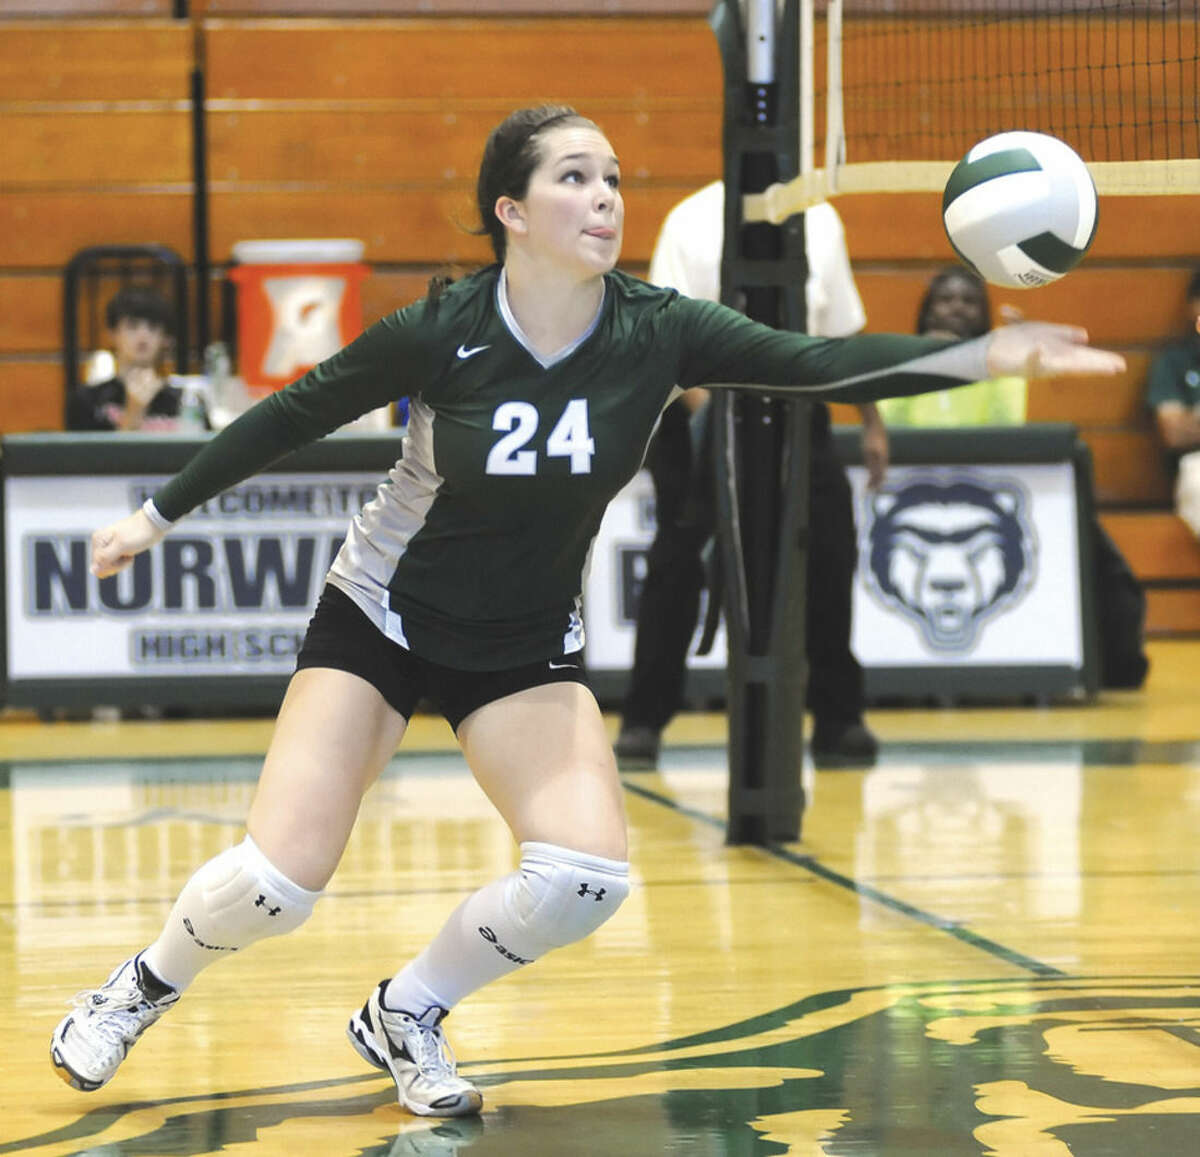 Hour photo/John Nash Norwalk's Tracey Morrell lunges to keep a ball alive during Wednesday's match against the New Canaan Rams at Scarso Gym in Norwalk.